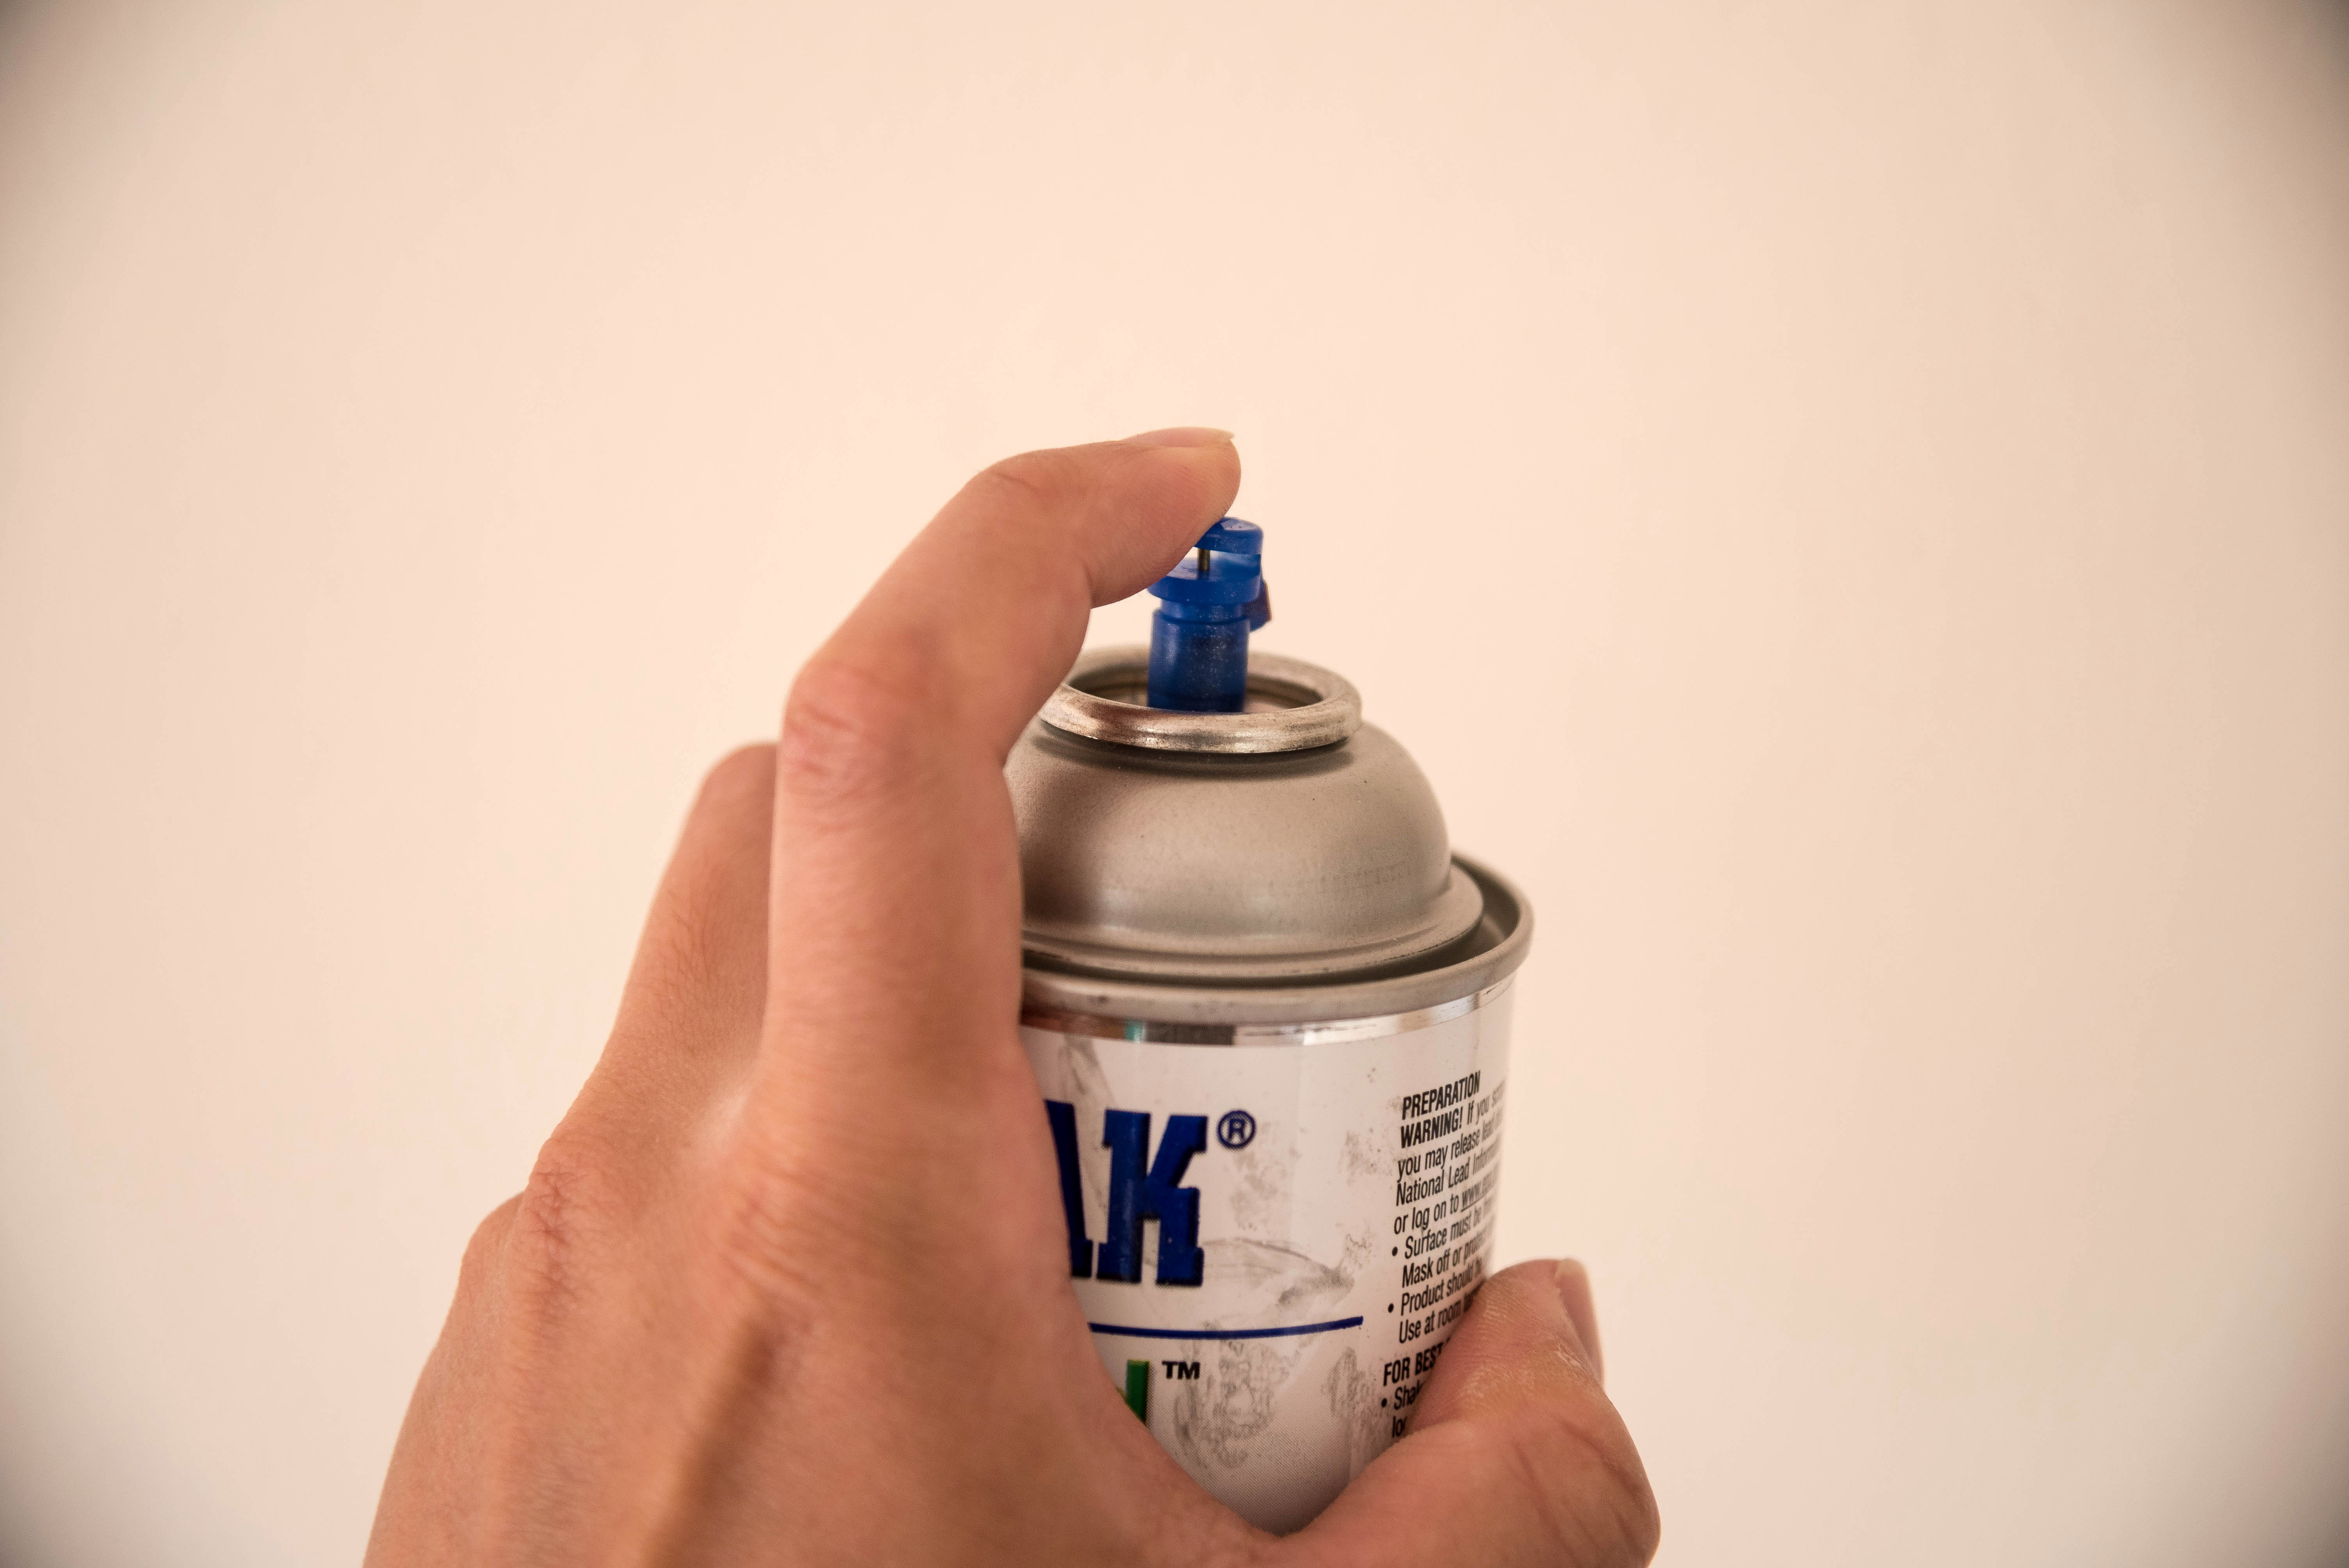 The Journey of Spray Painting: From Invention to a Modern Automotive Finishing Process